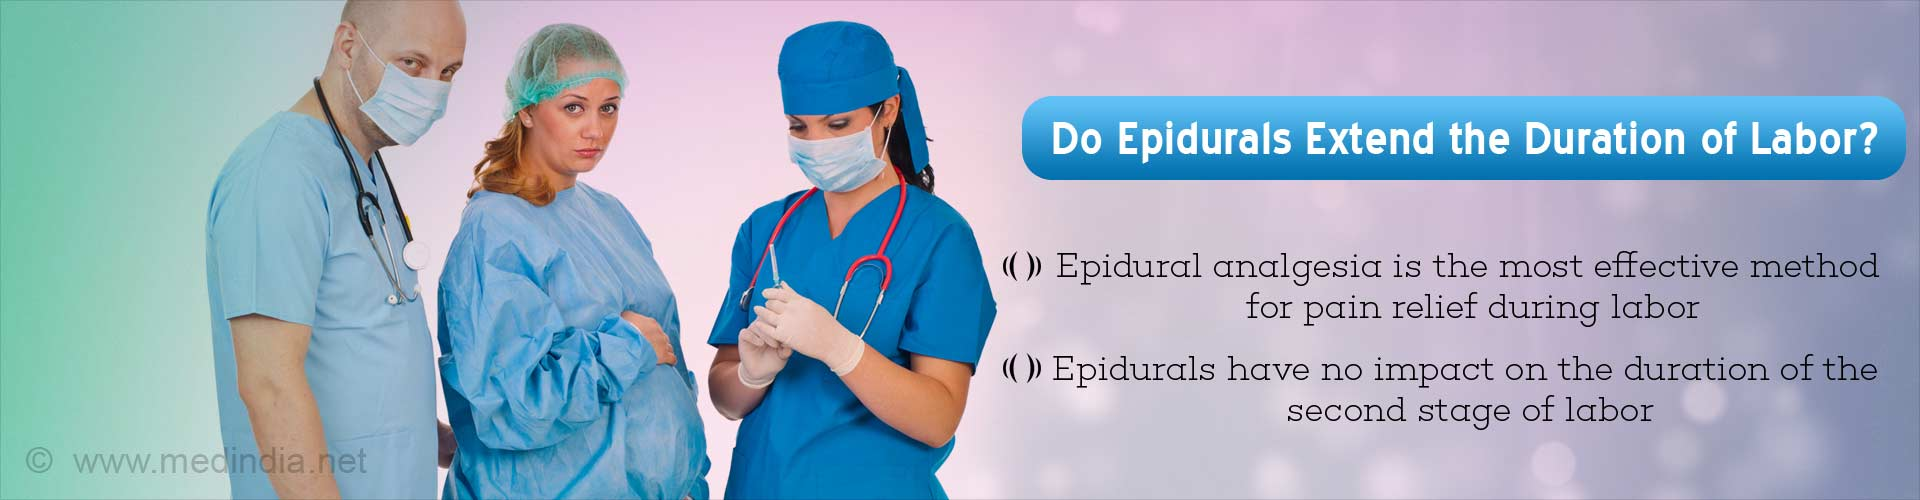 Epidurals Do Not Slow Childbirth